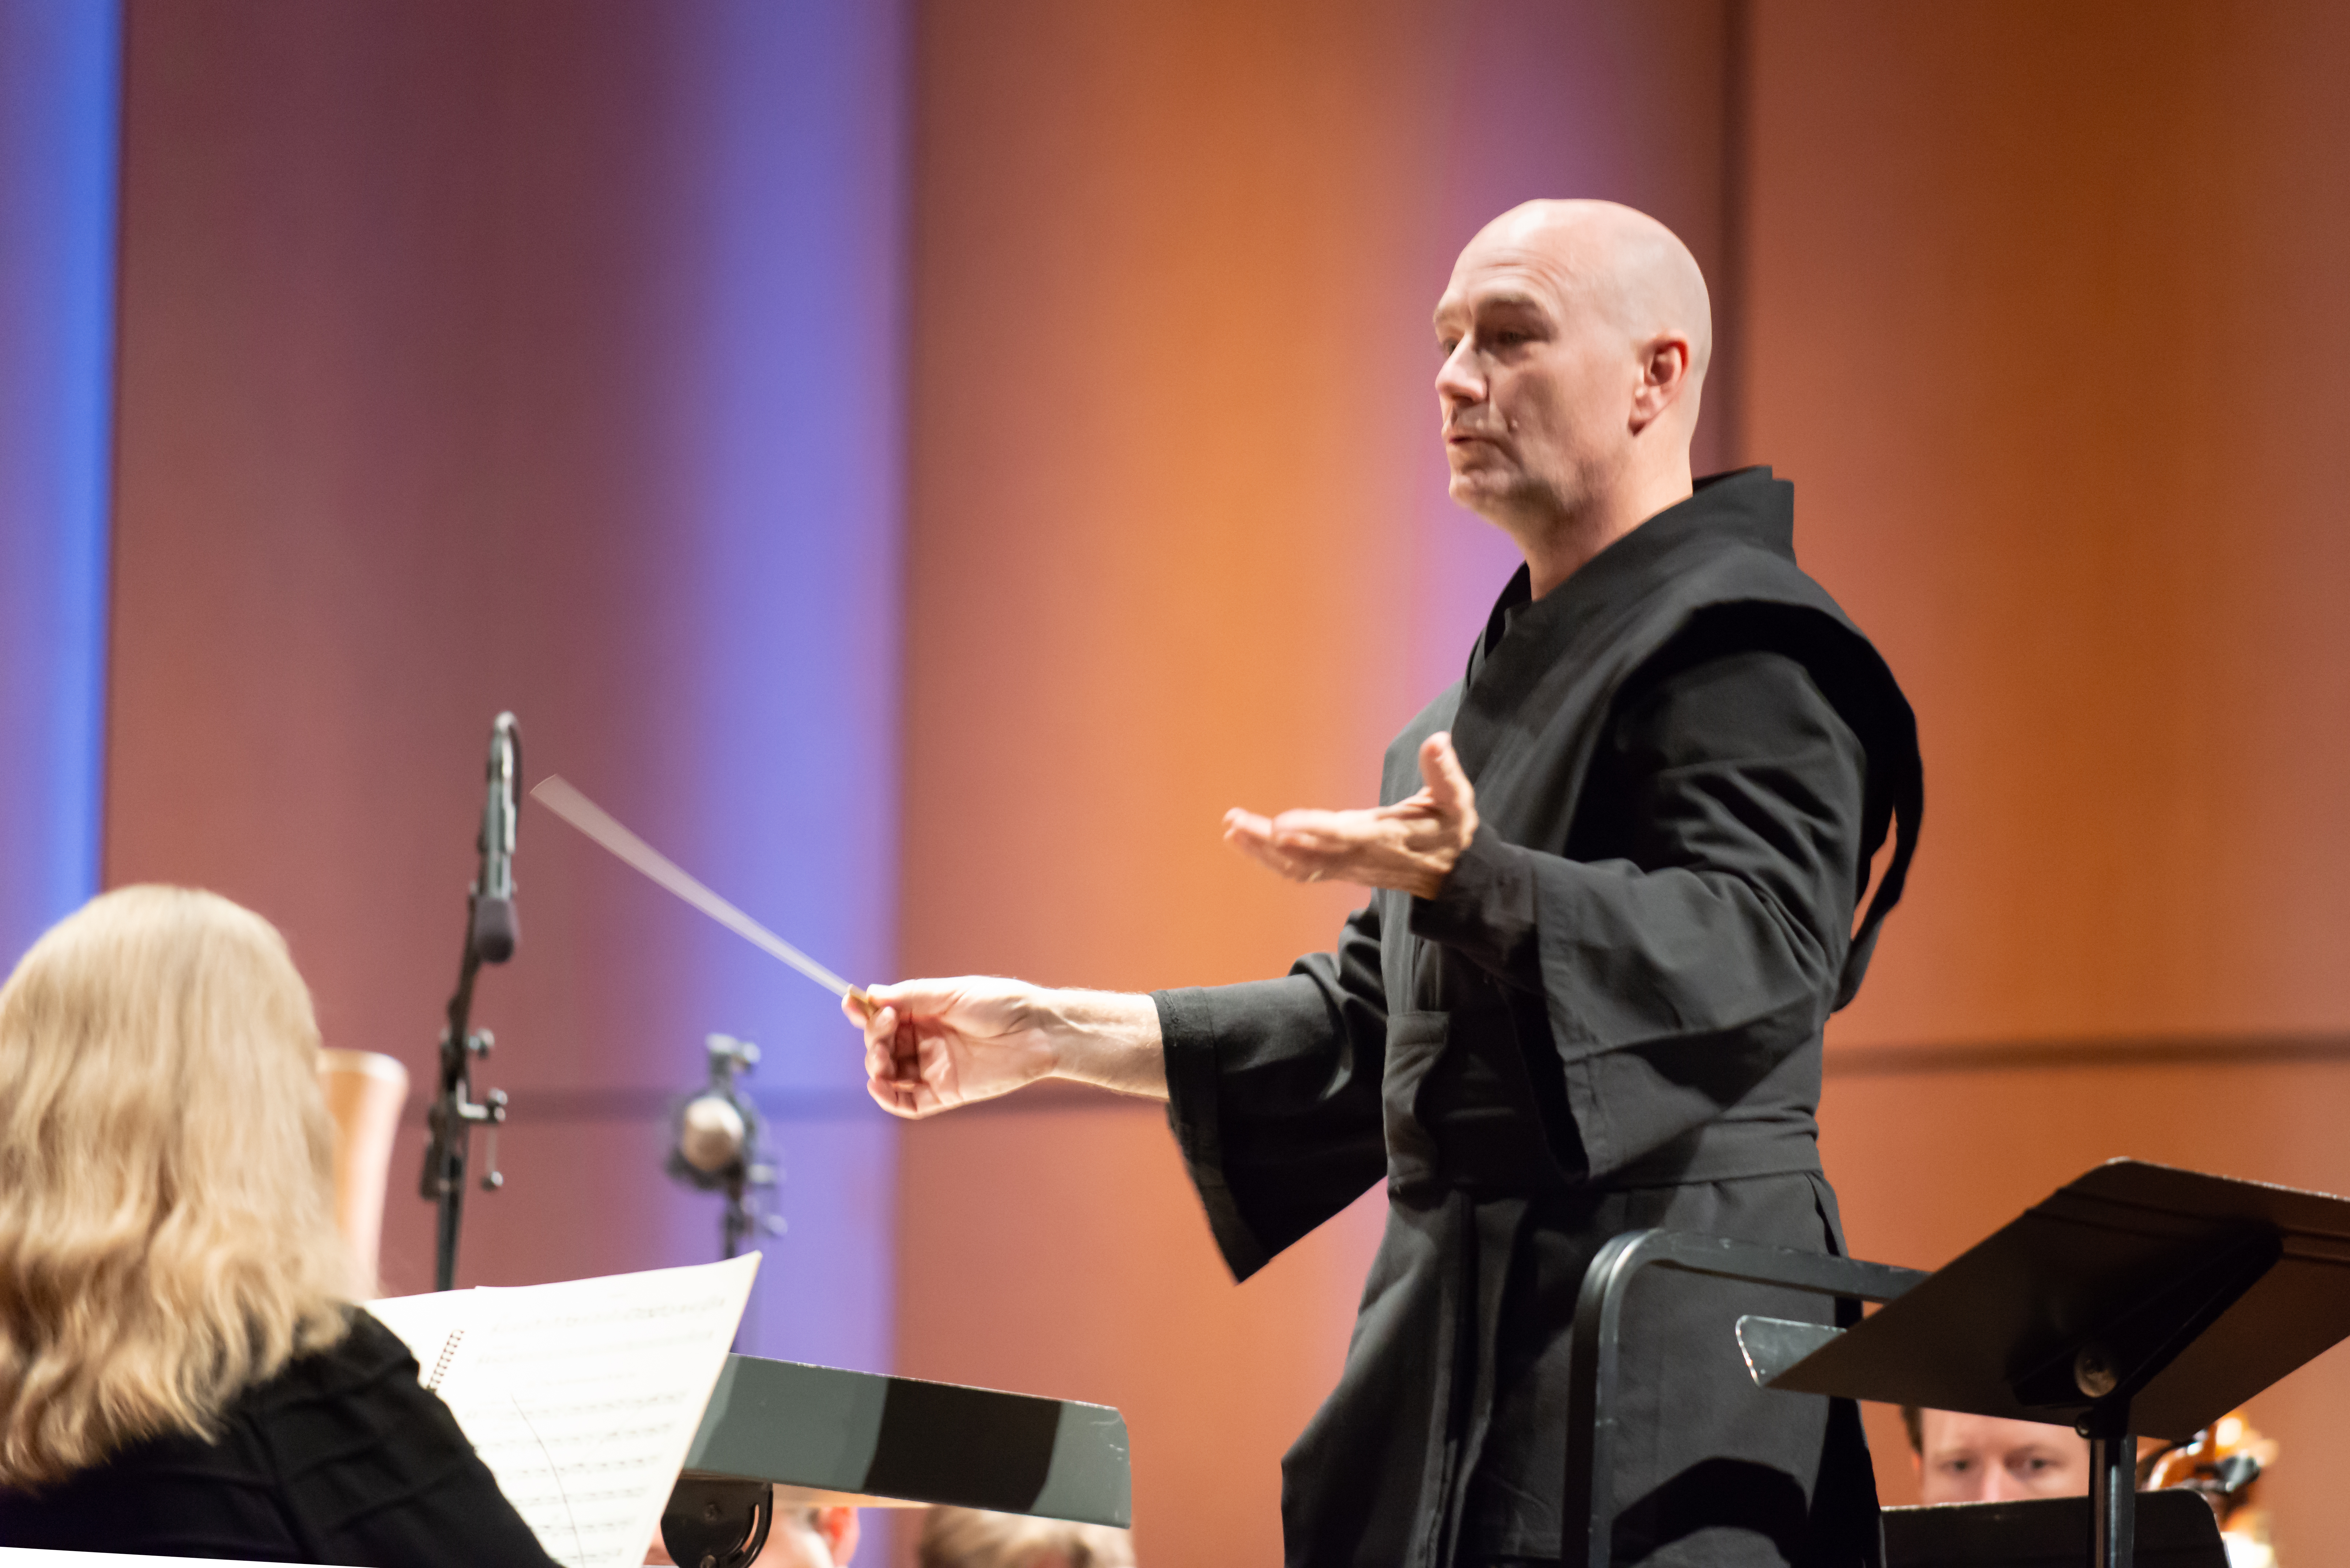 Conducting the Music of Star Wars